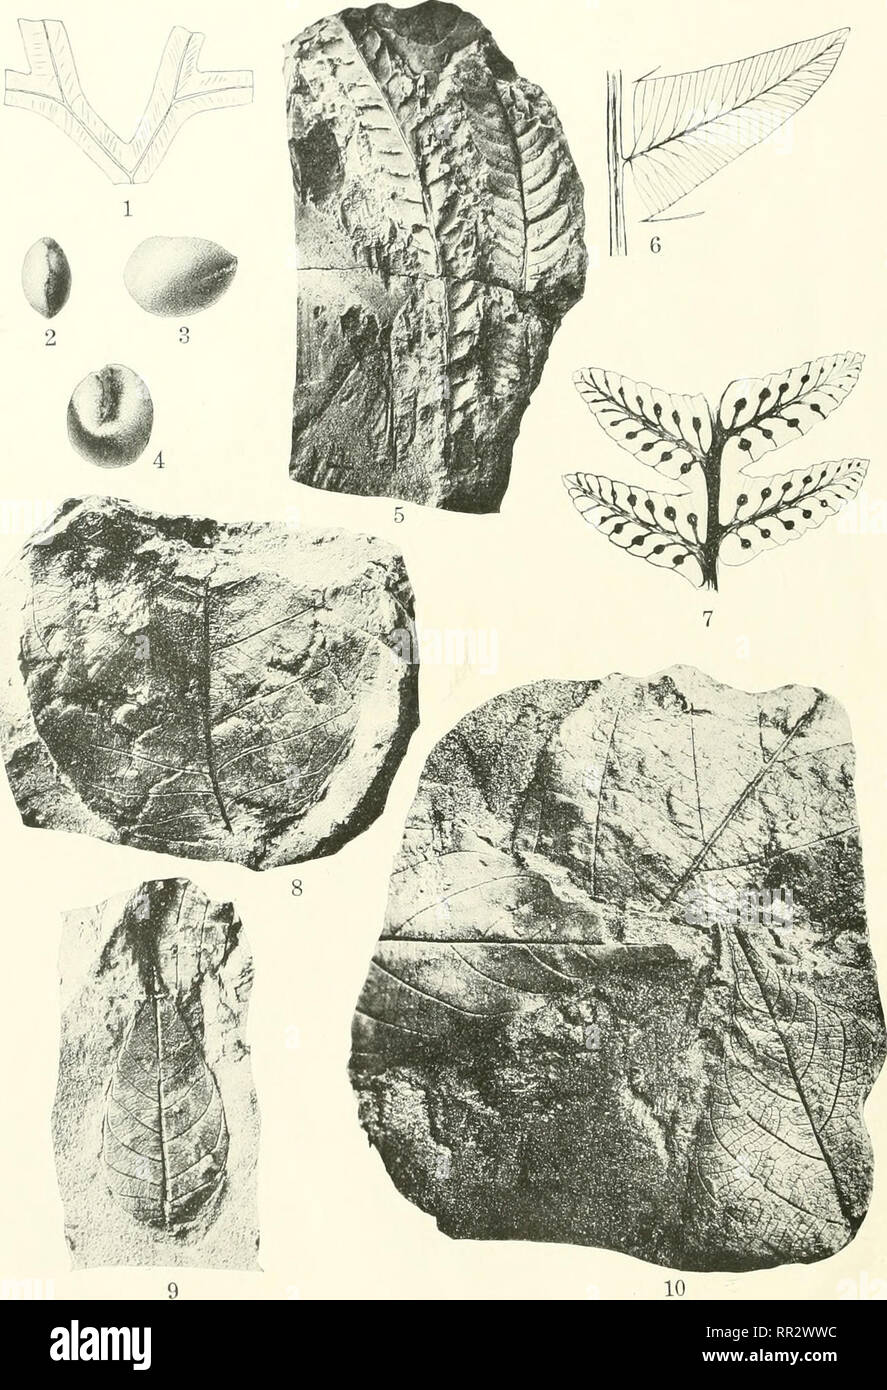 . Additions to the flora of the Wilcox group. Paleobotany -- Eocene. r. S. i, [i u OGII l. SURVEY PROFESSIONAL TAPER 131 PLATE IV. FOSSIL PLANTS OF THE WILCOX GROUP. I. Marchantites stephensoni Berry, Jacksonville, Ark.; 2-4, Palmocarpon butlerensis Perry, near Oakville, Tex.; • ? Di yopteris cladophleboides K nowlton, Goss pit, near Mansfield, La. (6, pinnule to show venalion. enlarged 5 diameters; 7, fertile pinnules, enlarged 5 diameters); 8-10, Artocarpoides balli Berry, Goss pit, near Mansfield, La.. Please note that these images are extracted from scanned page images that may have been  - Stock Image